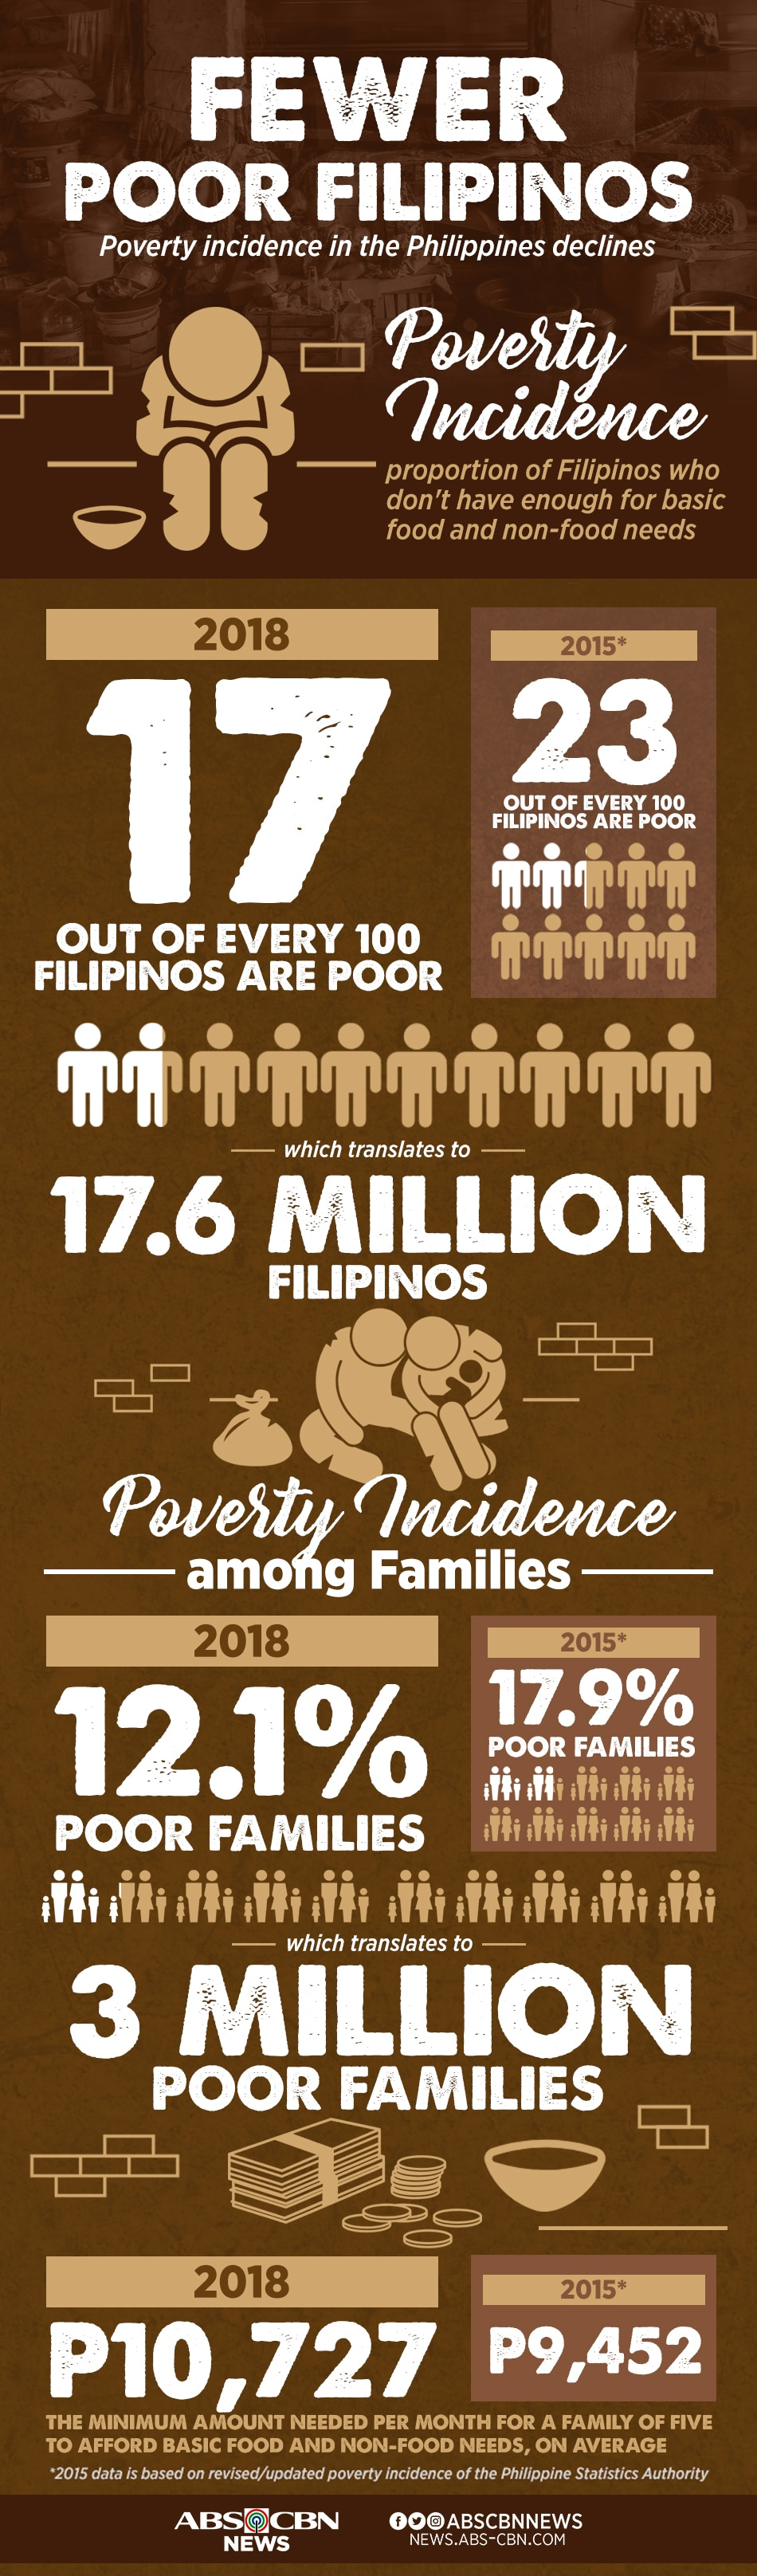 Poverty incidence declines in 3 years